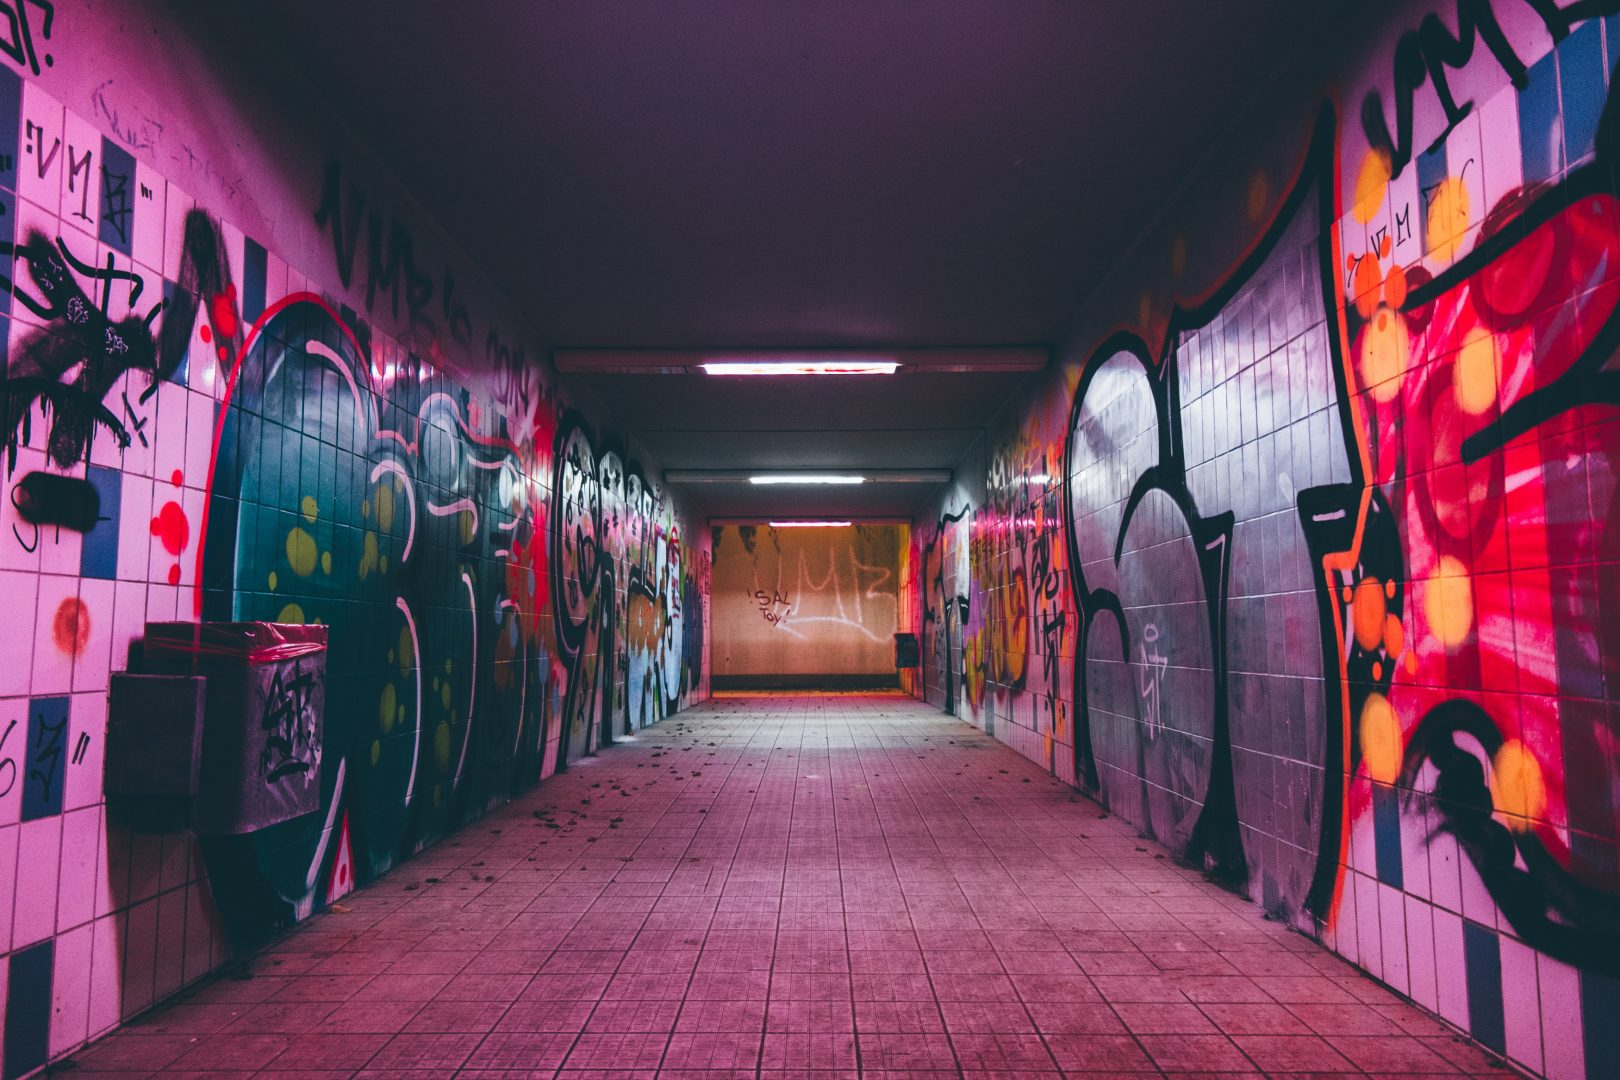 empty tunnel pathway with graffiti walls